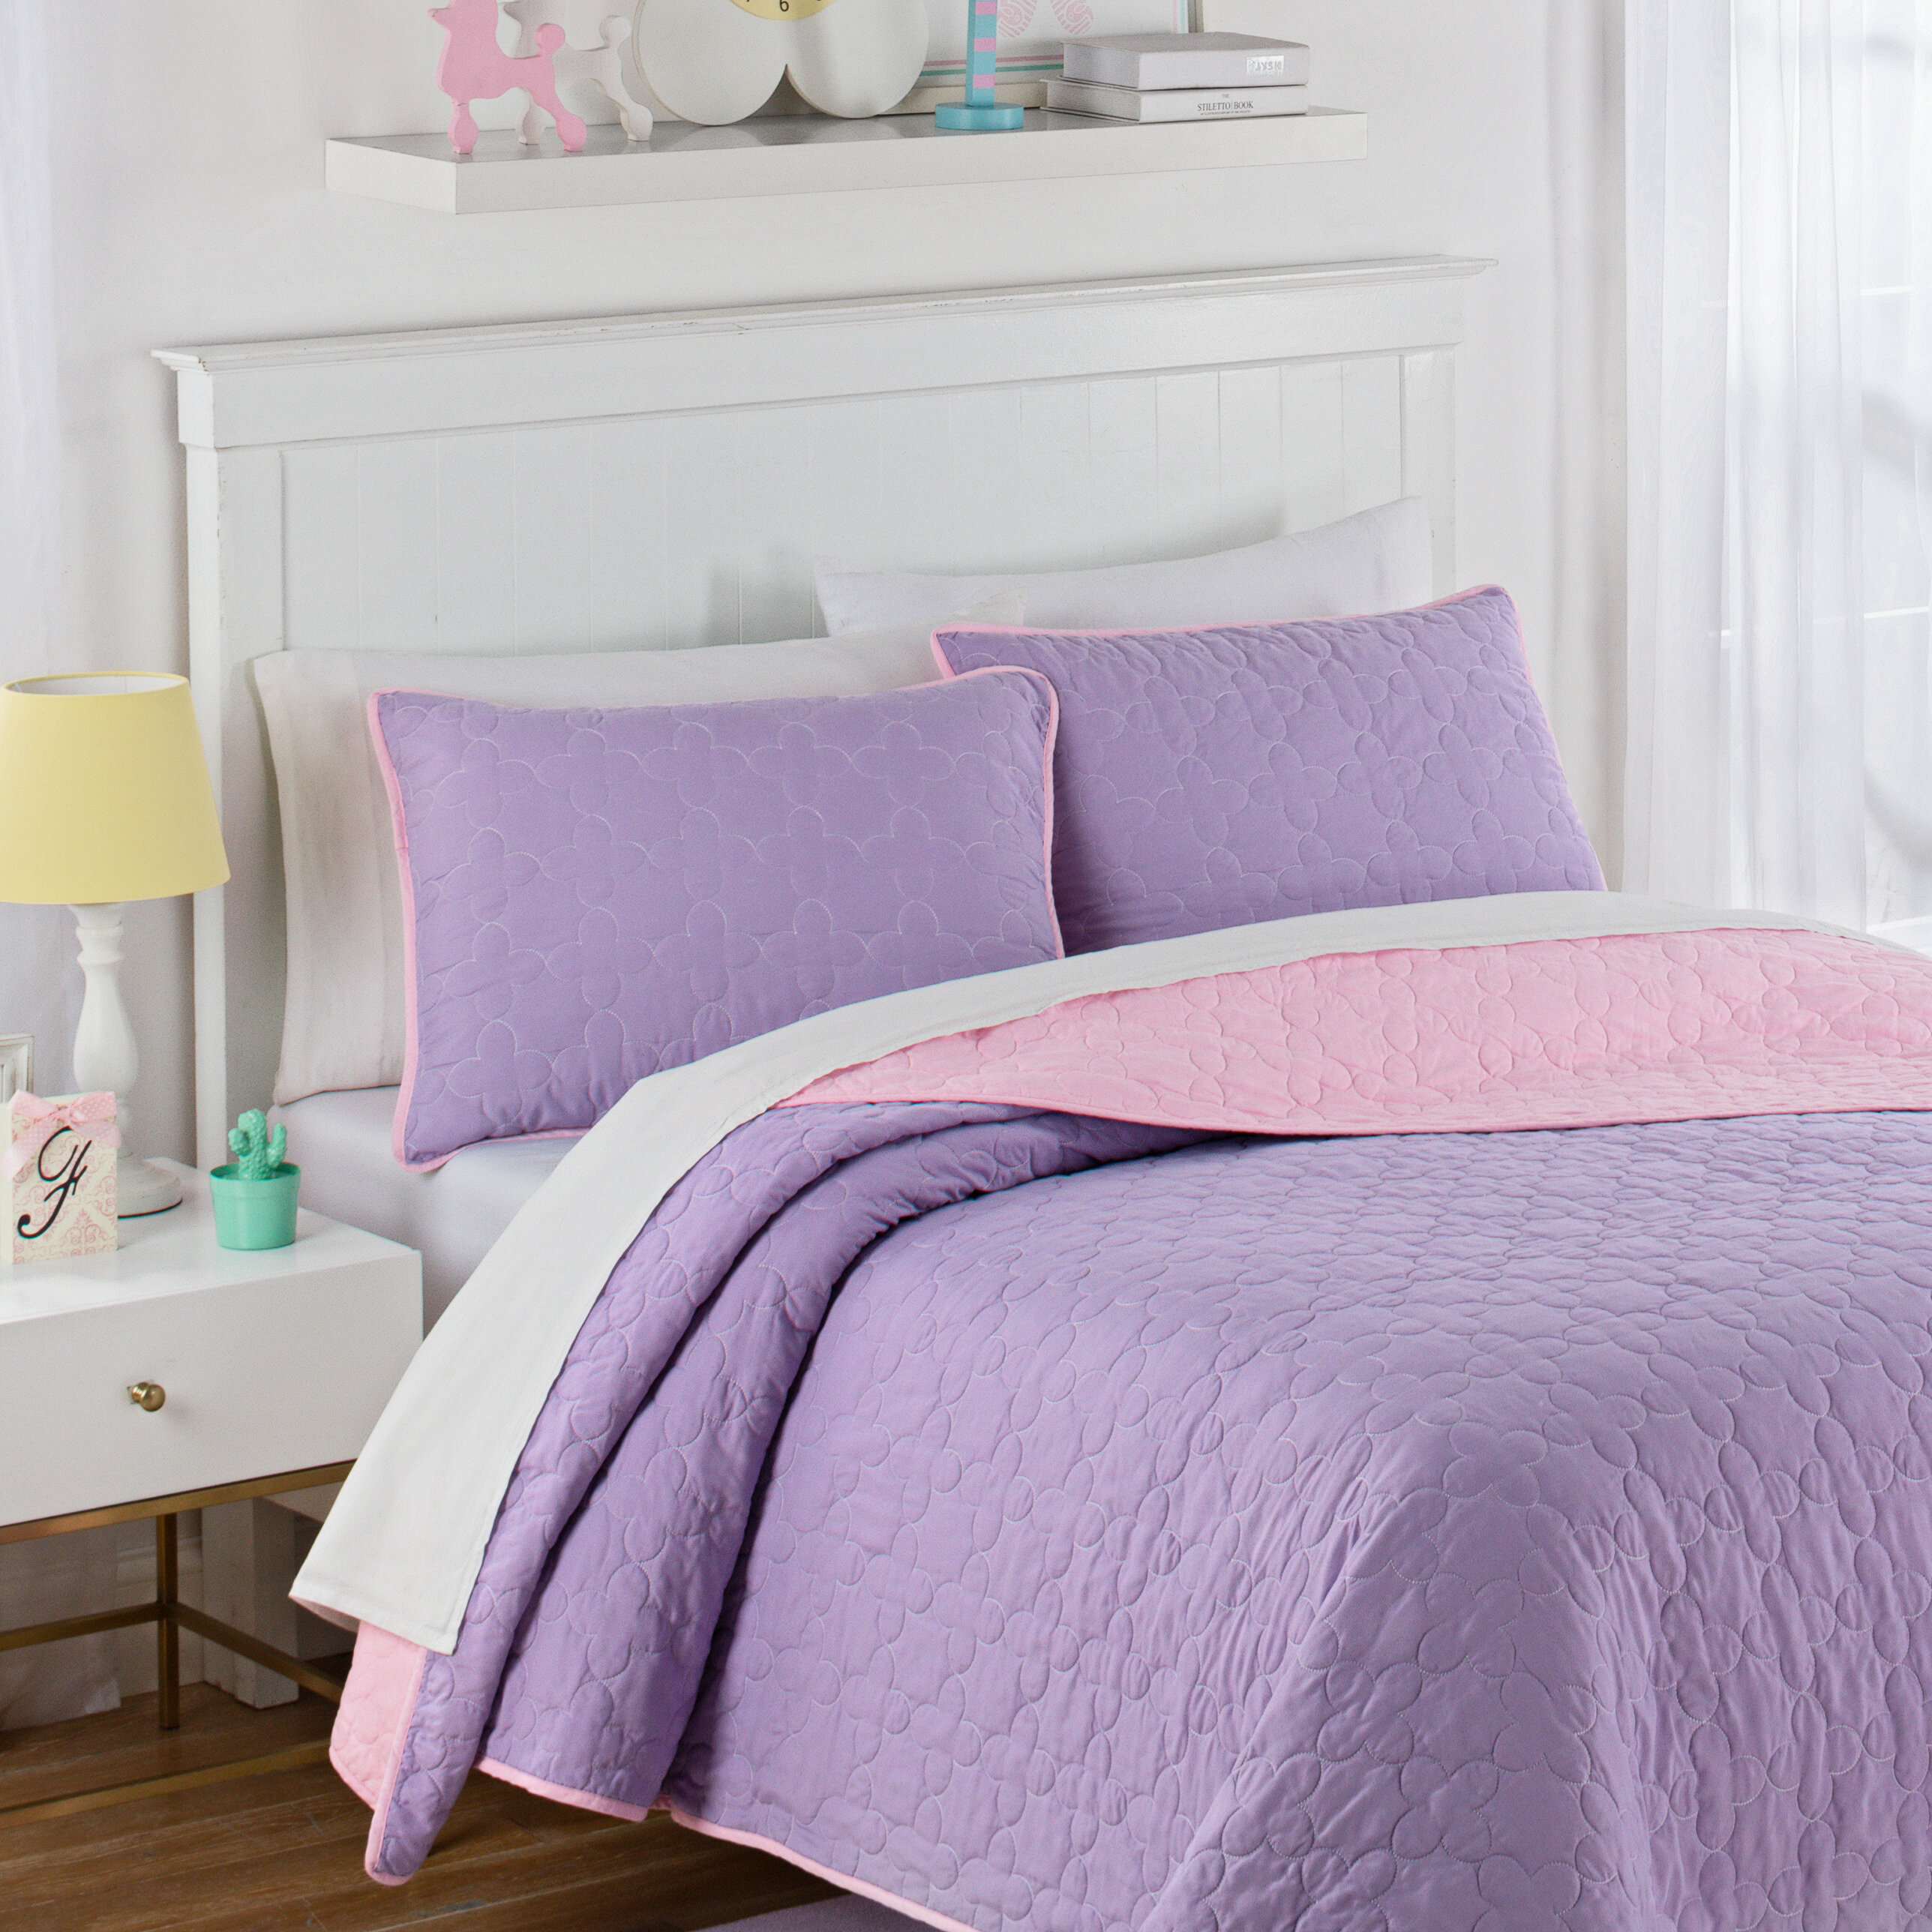 twin set queen turquoise bedding gold and lavender quilts of bedspread full coverlets coverlet grey plum royal quilt sets paisley gray king purple comforter solid size